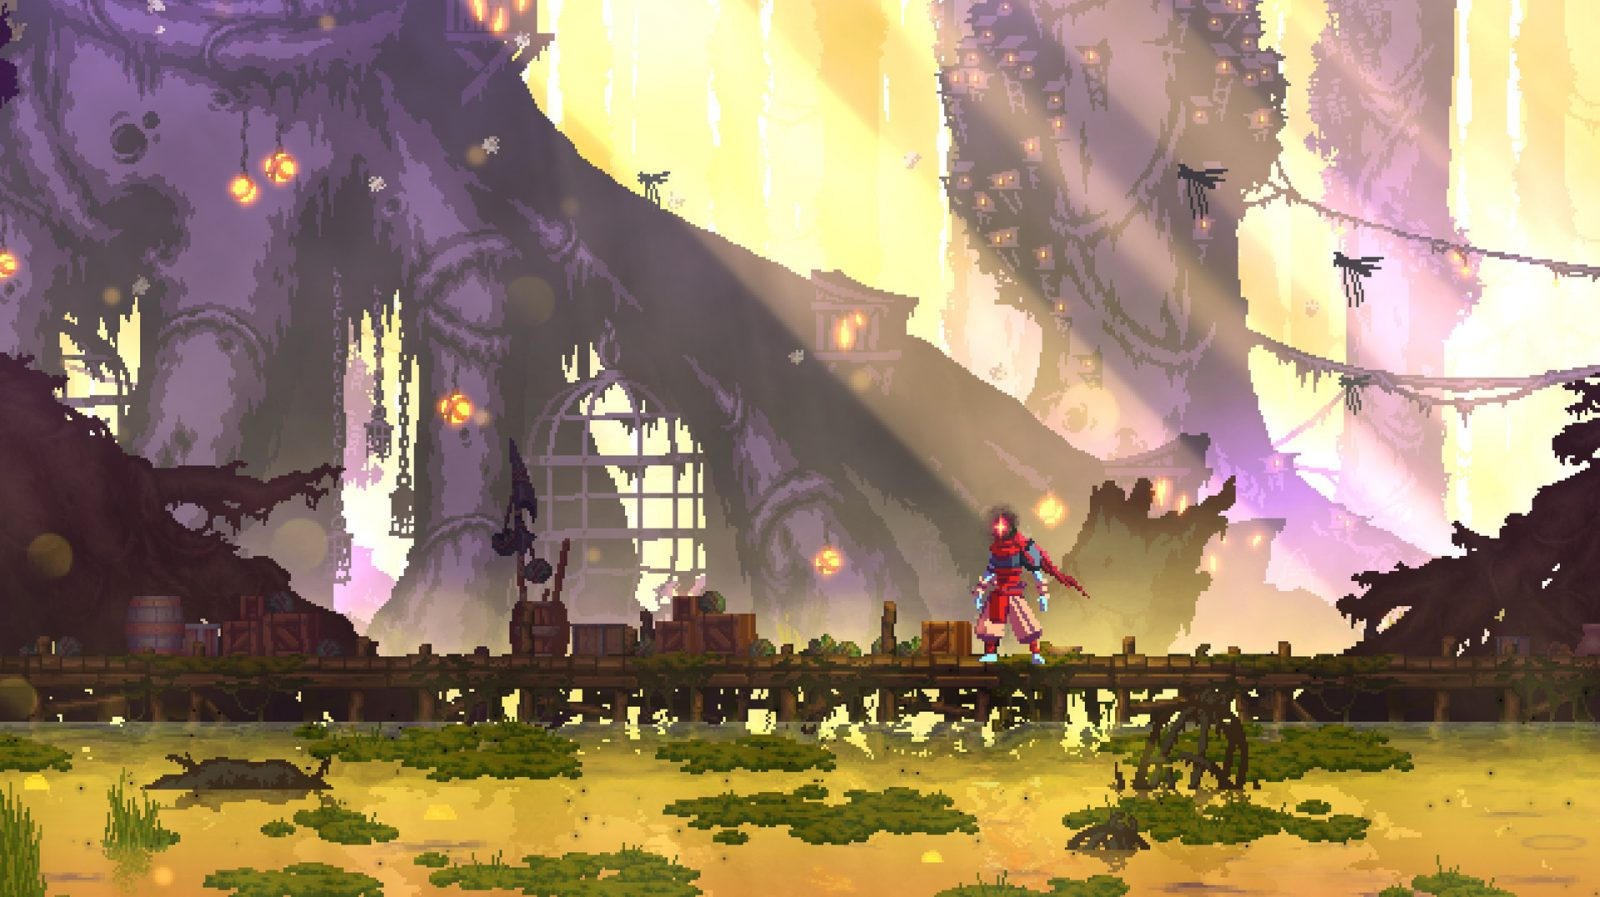 The Bad Seed DLC Announced for Dead Cells, Launches in Q1 2020